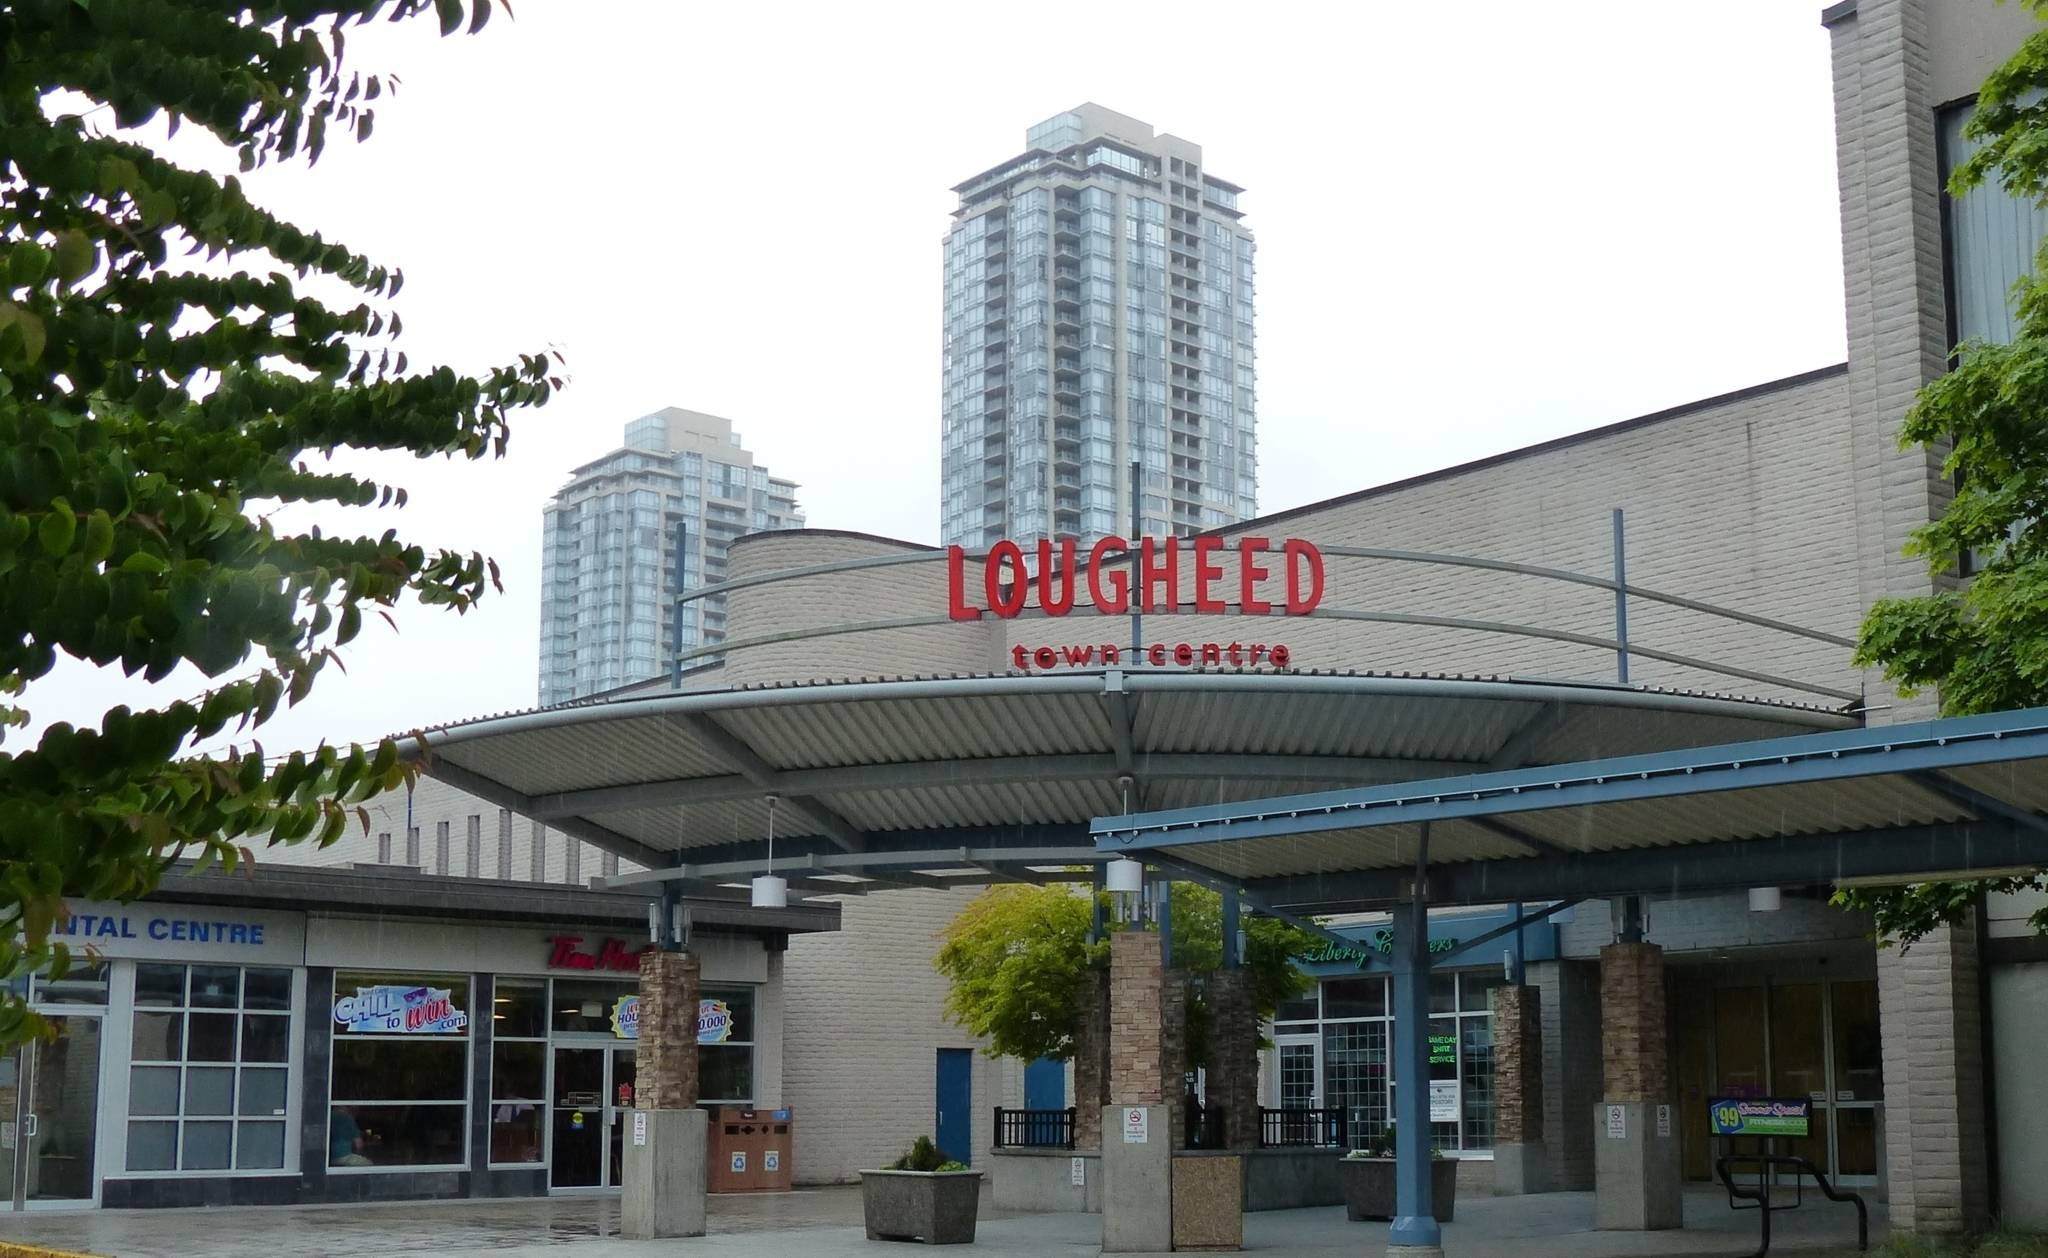 Lougheed Town Centre in Burnaby